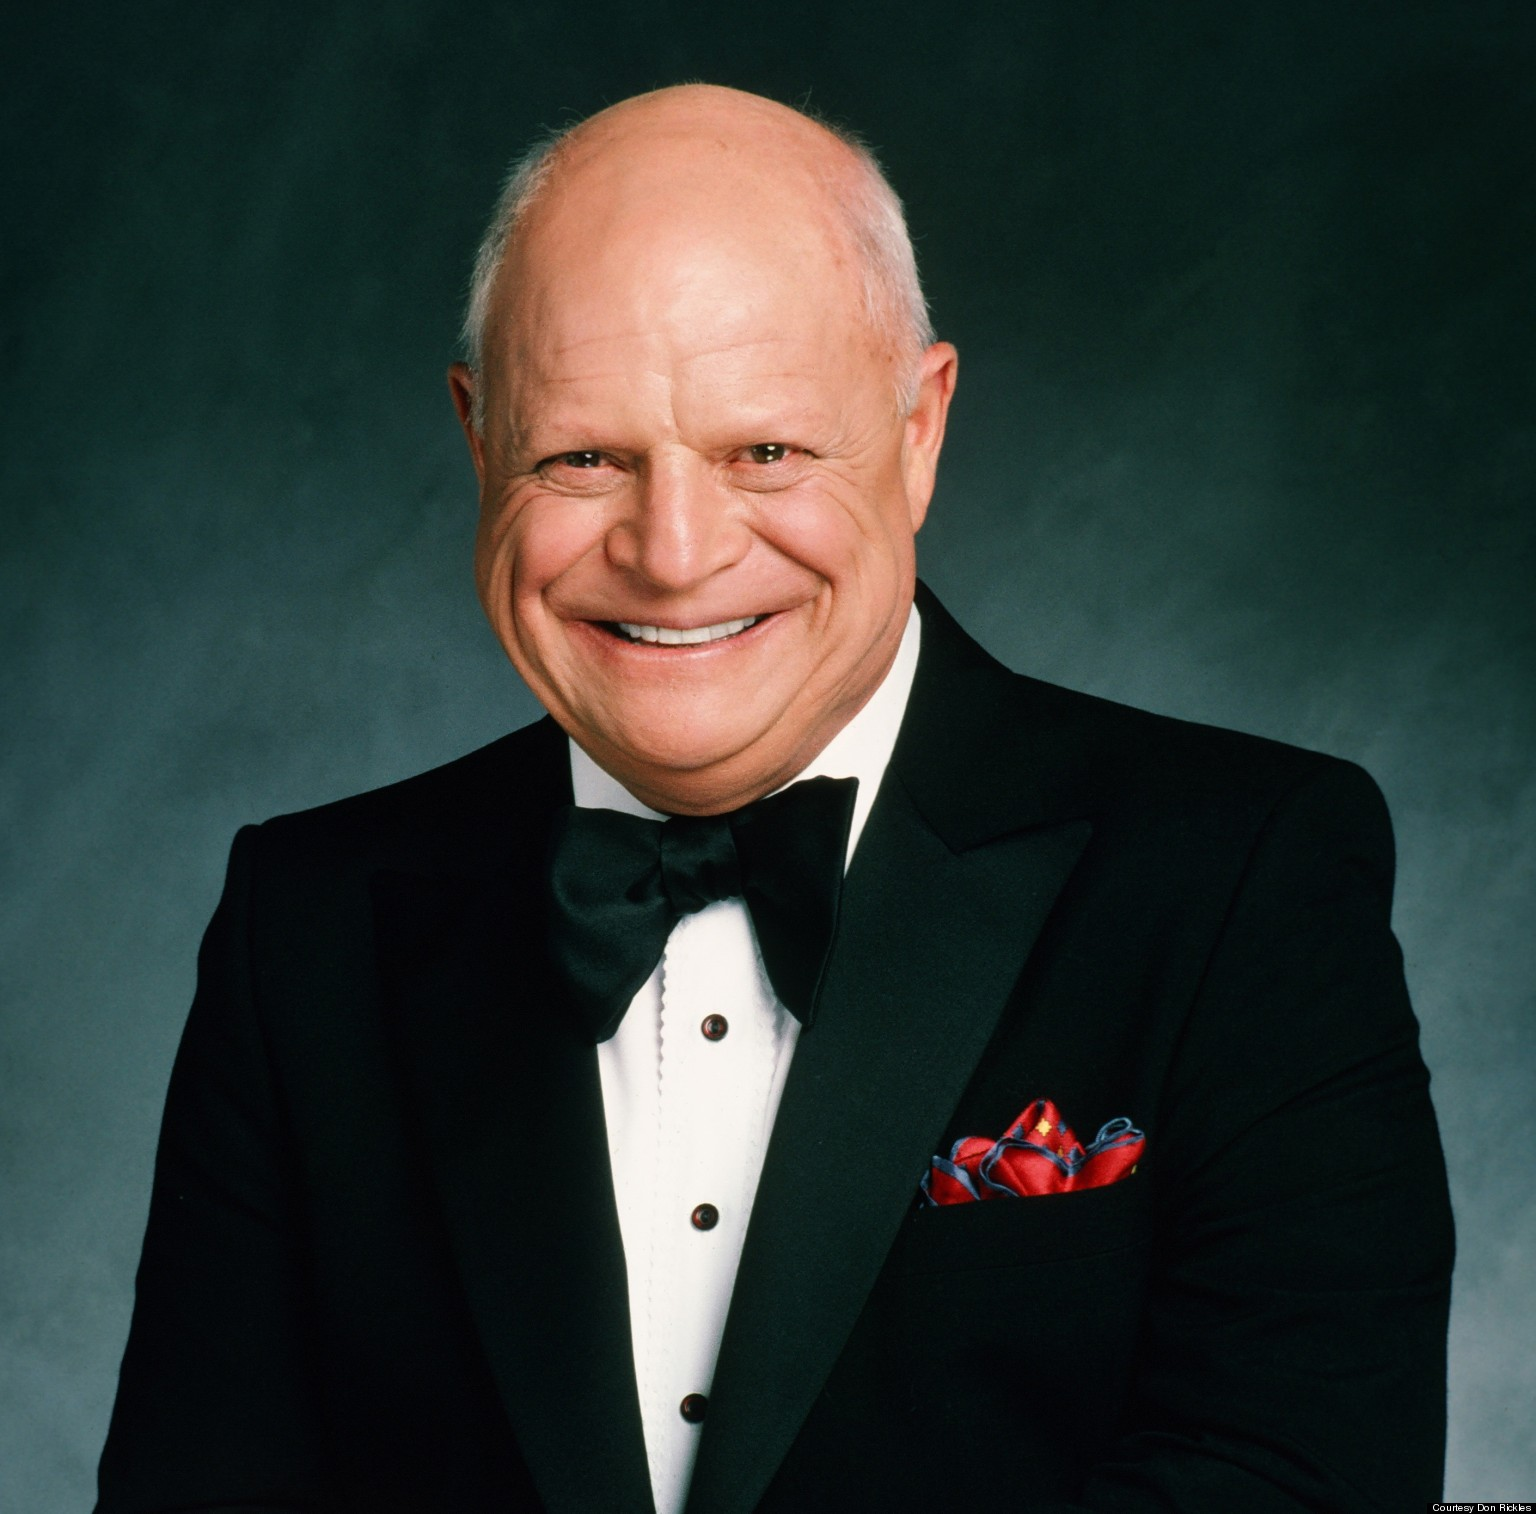 Tips: Don Rickles, 2017s edgy hair style of the cool flirty  actor